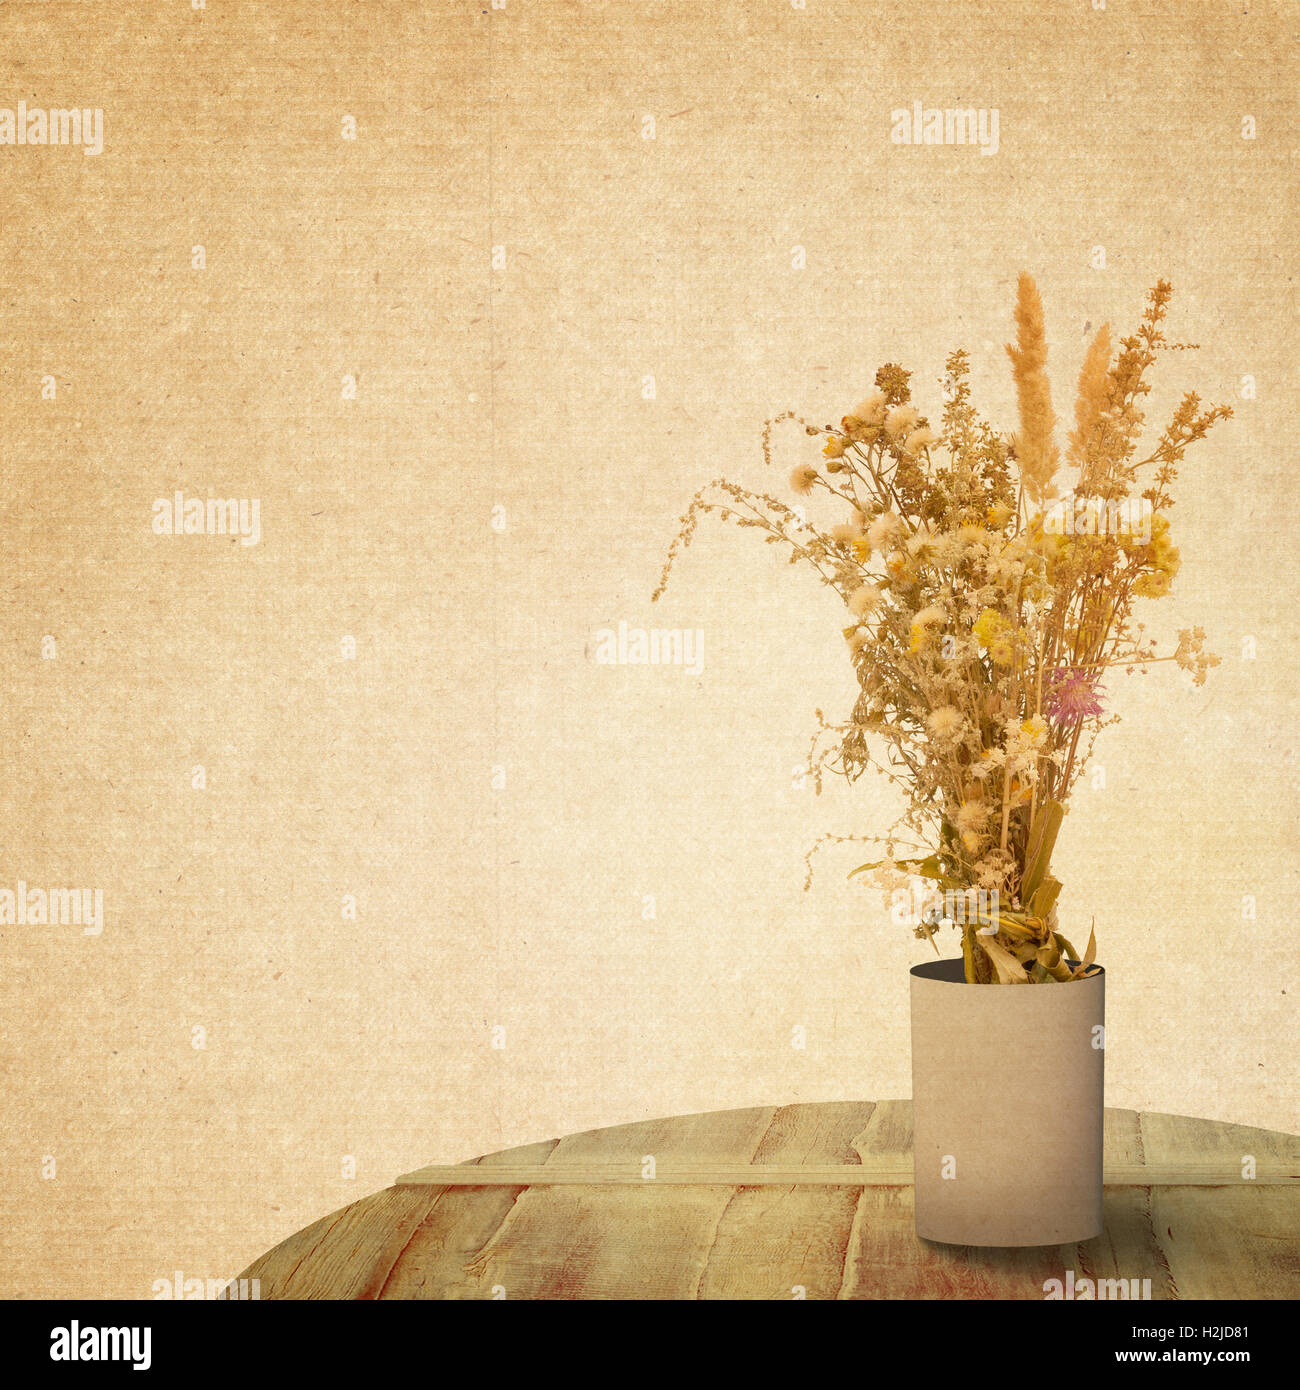 Textured Old Paper Background With Flower Stock Photo 122107441 Alamy